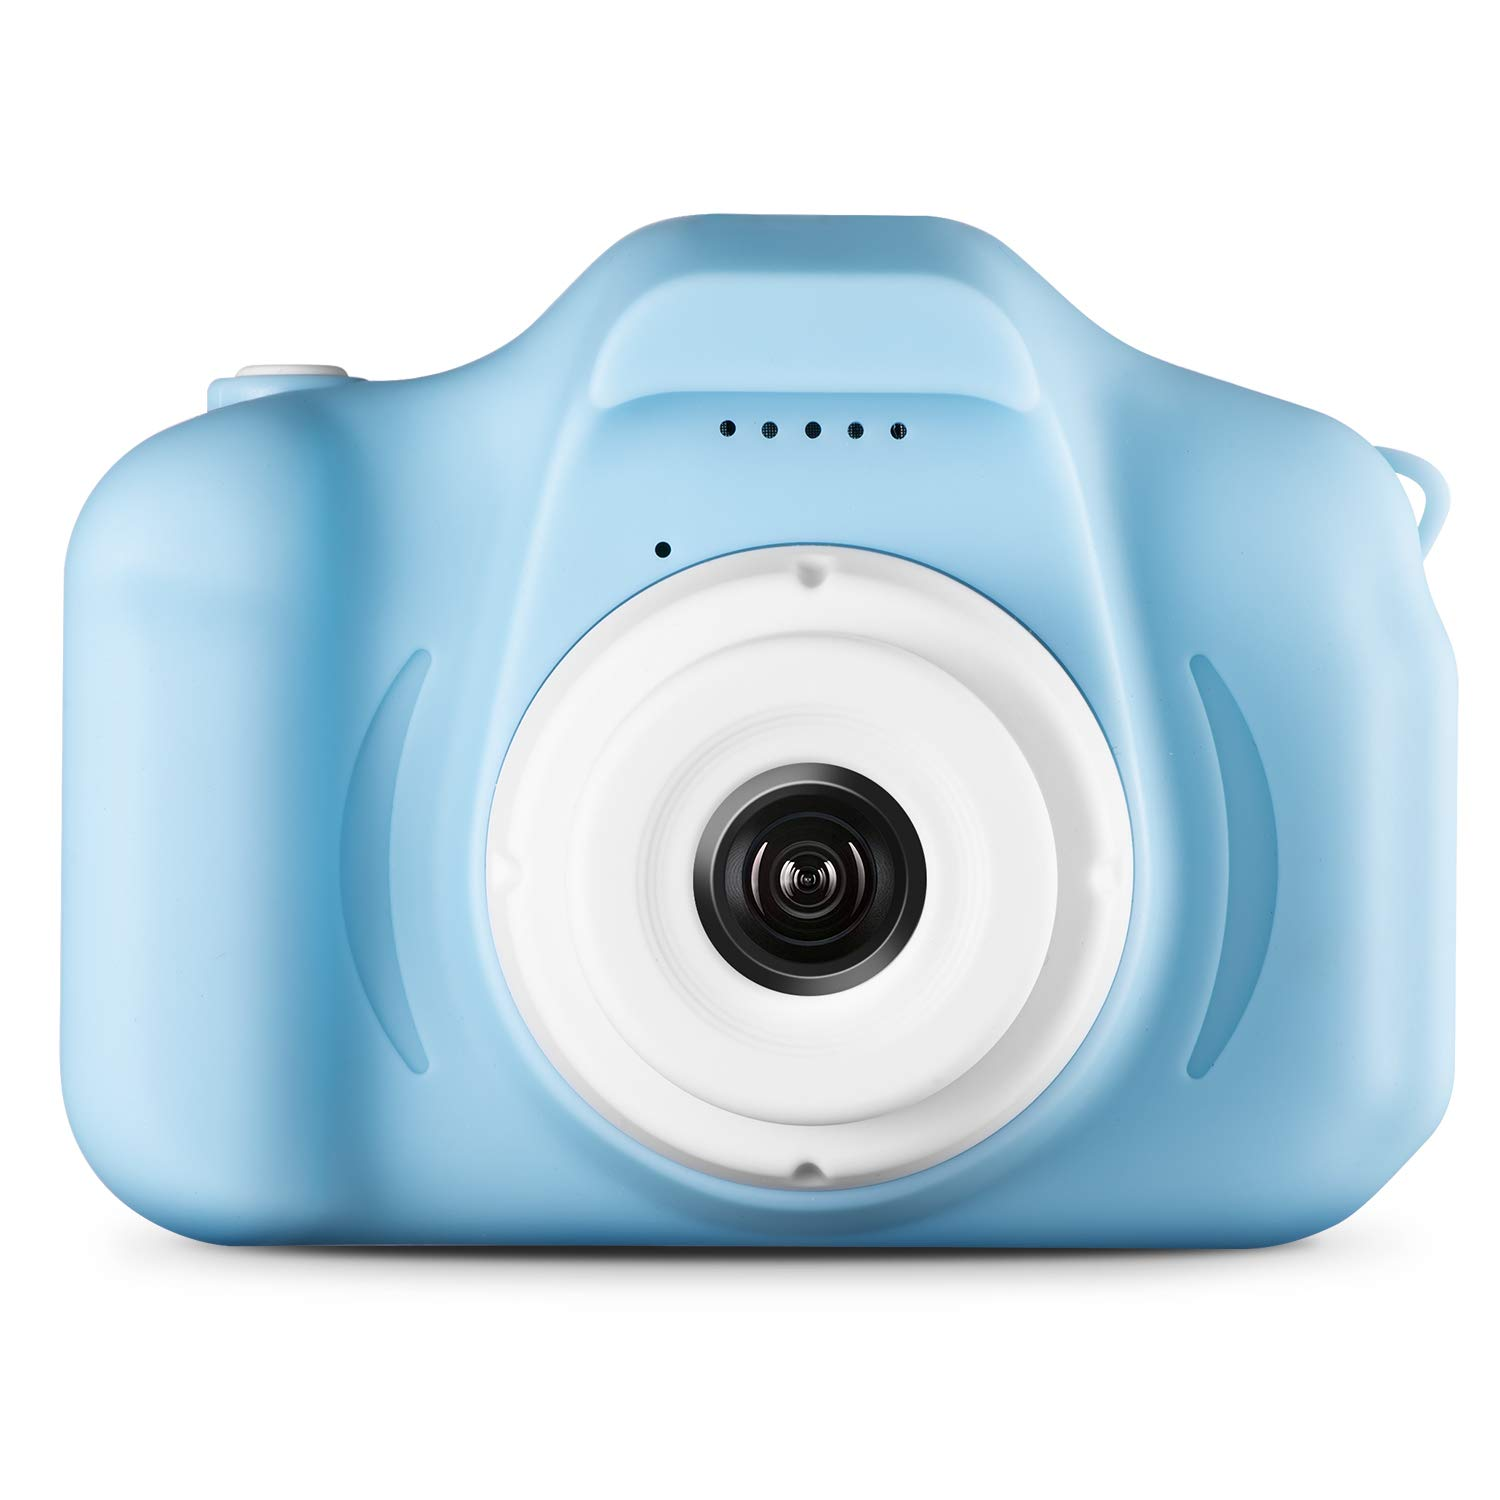 Agassi Kids Camera ,Digital Camera for Kids,Digital Video Camera Children Creative DIY Camcorder with Rechargeable Battery Birthday / Christmas / (16G TF Card Included),Blue by Agassi